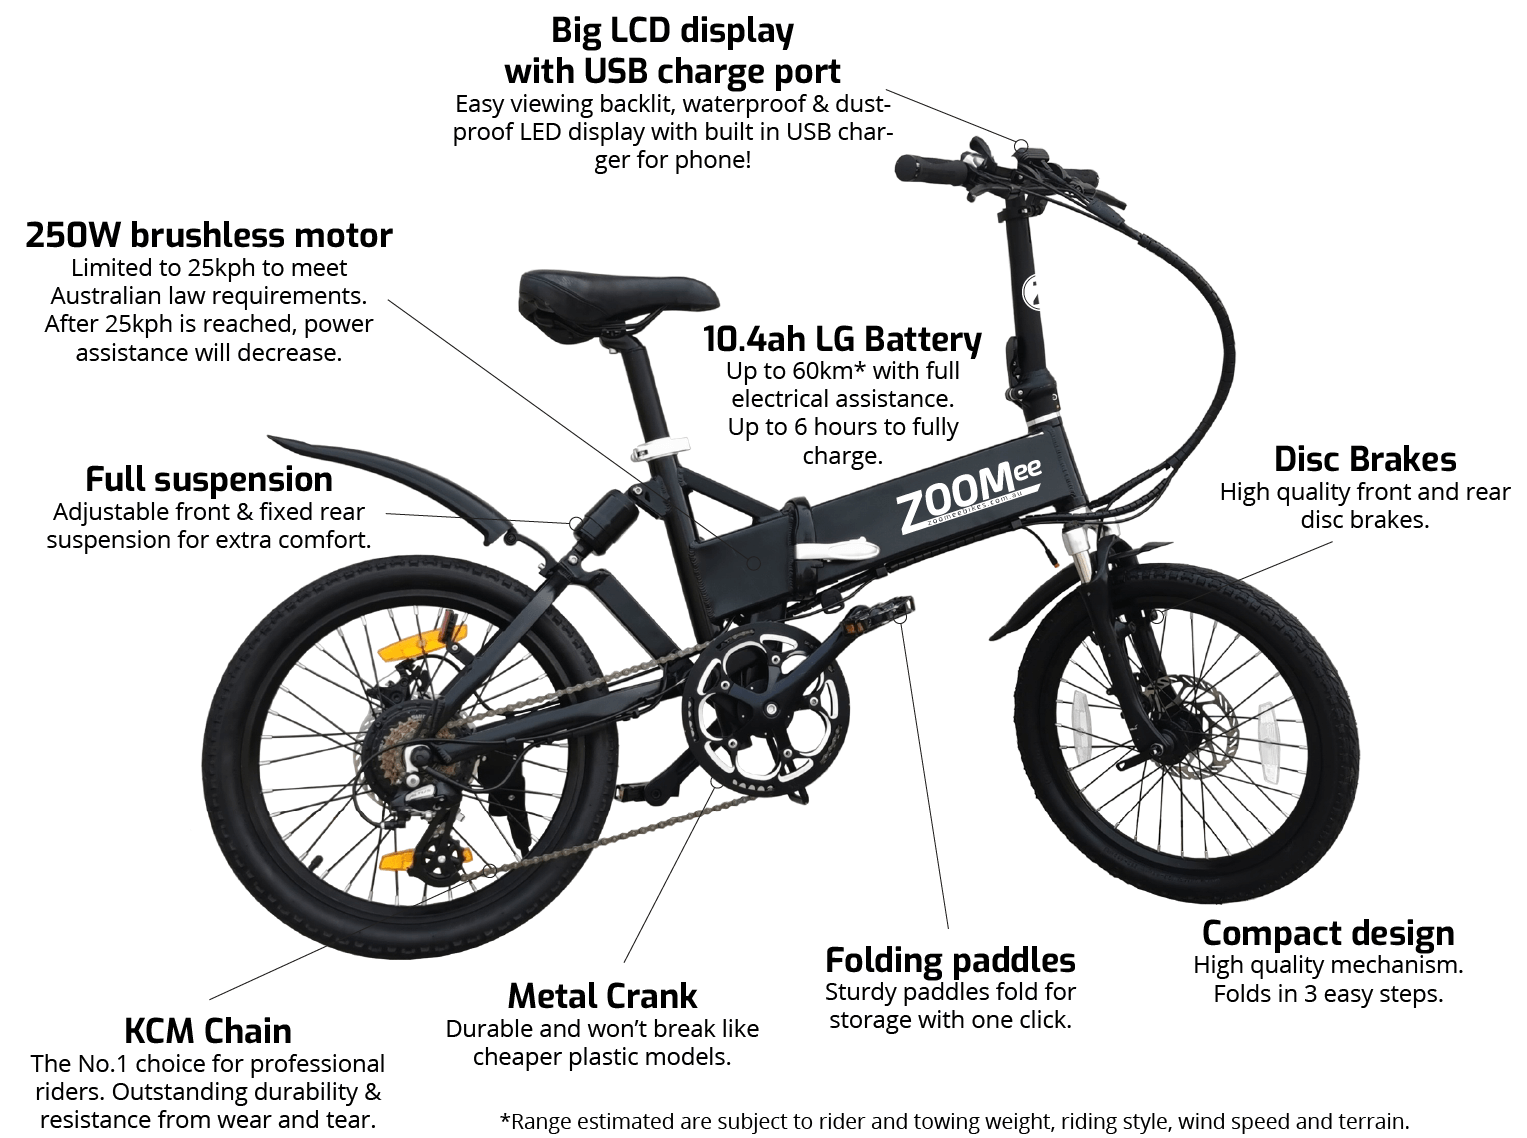 ZooMee electric bike features Burswood Perth